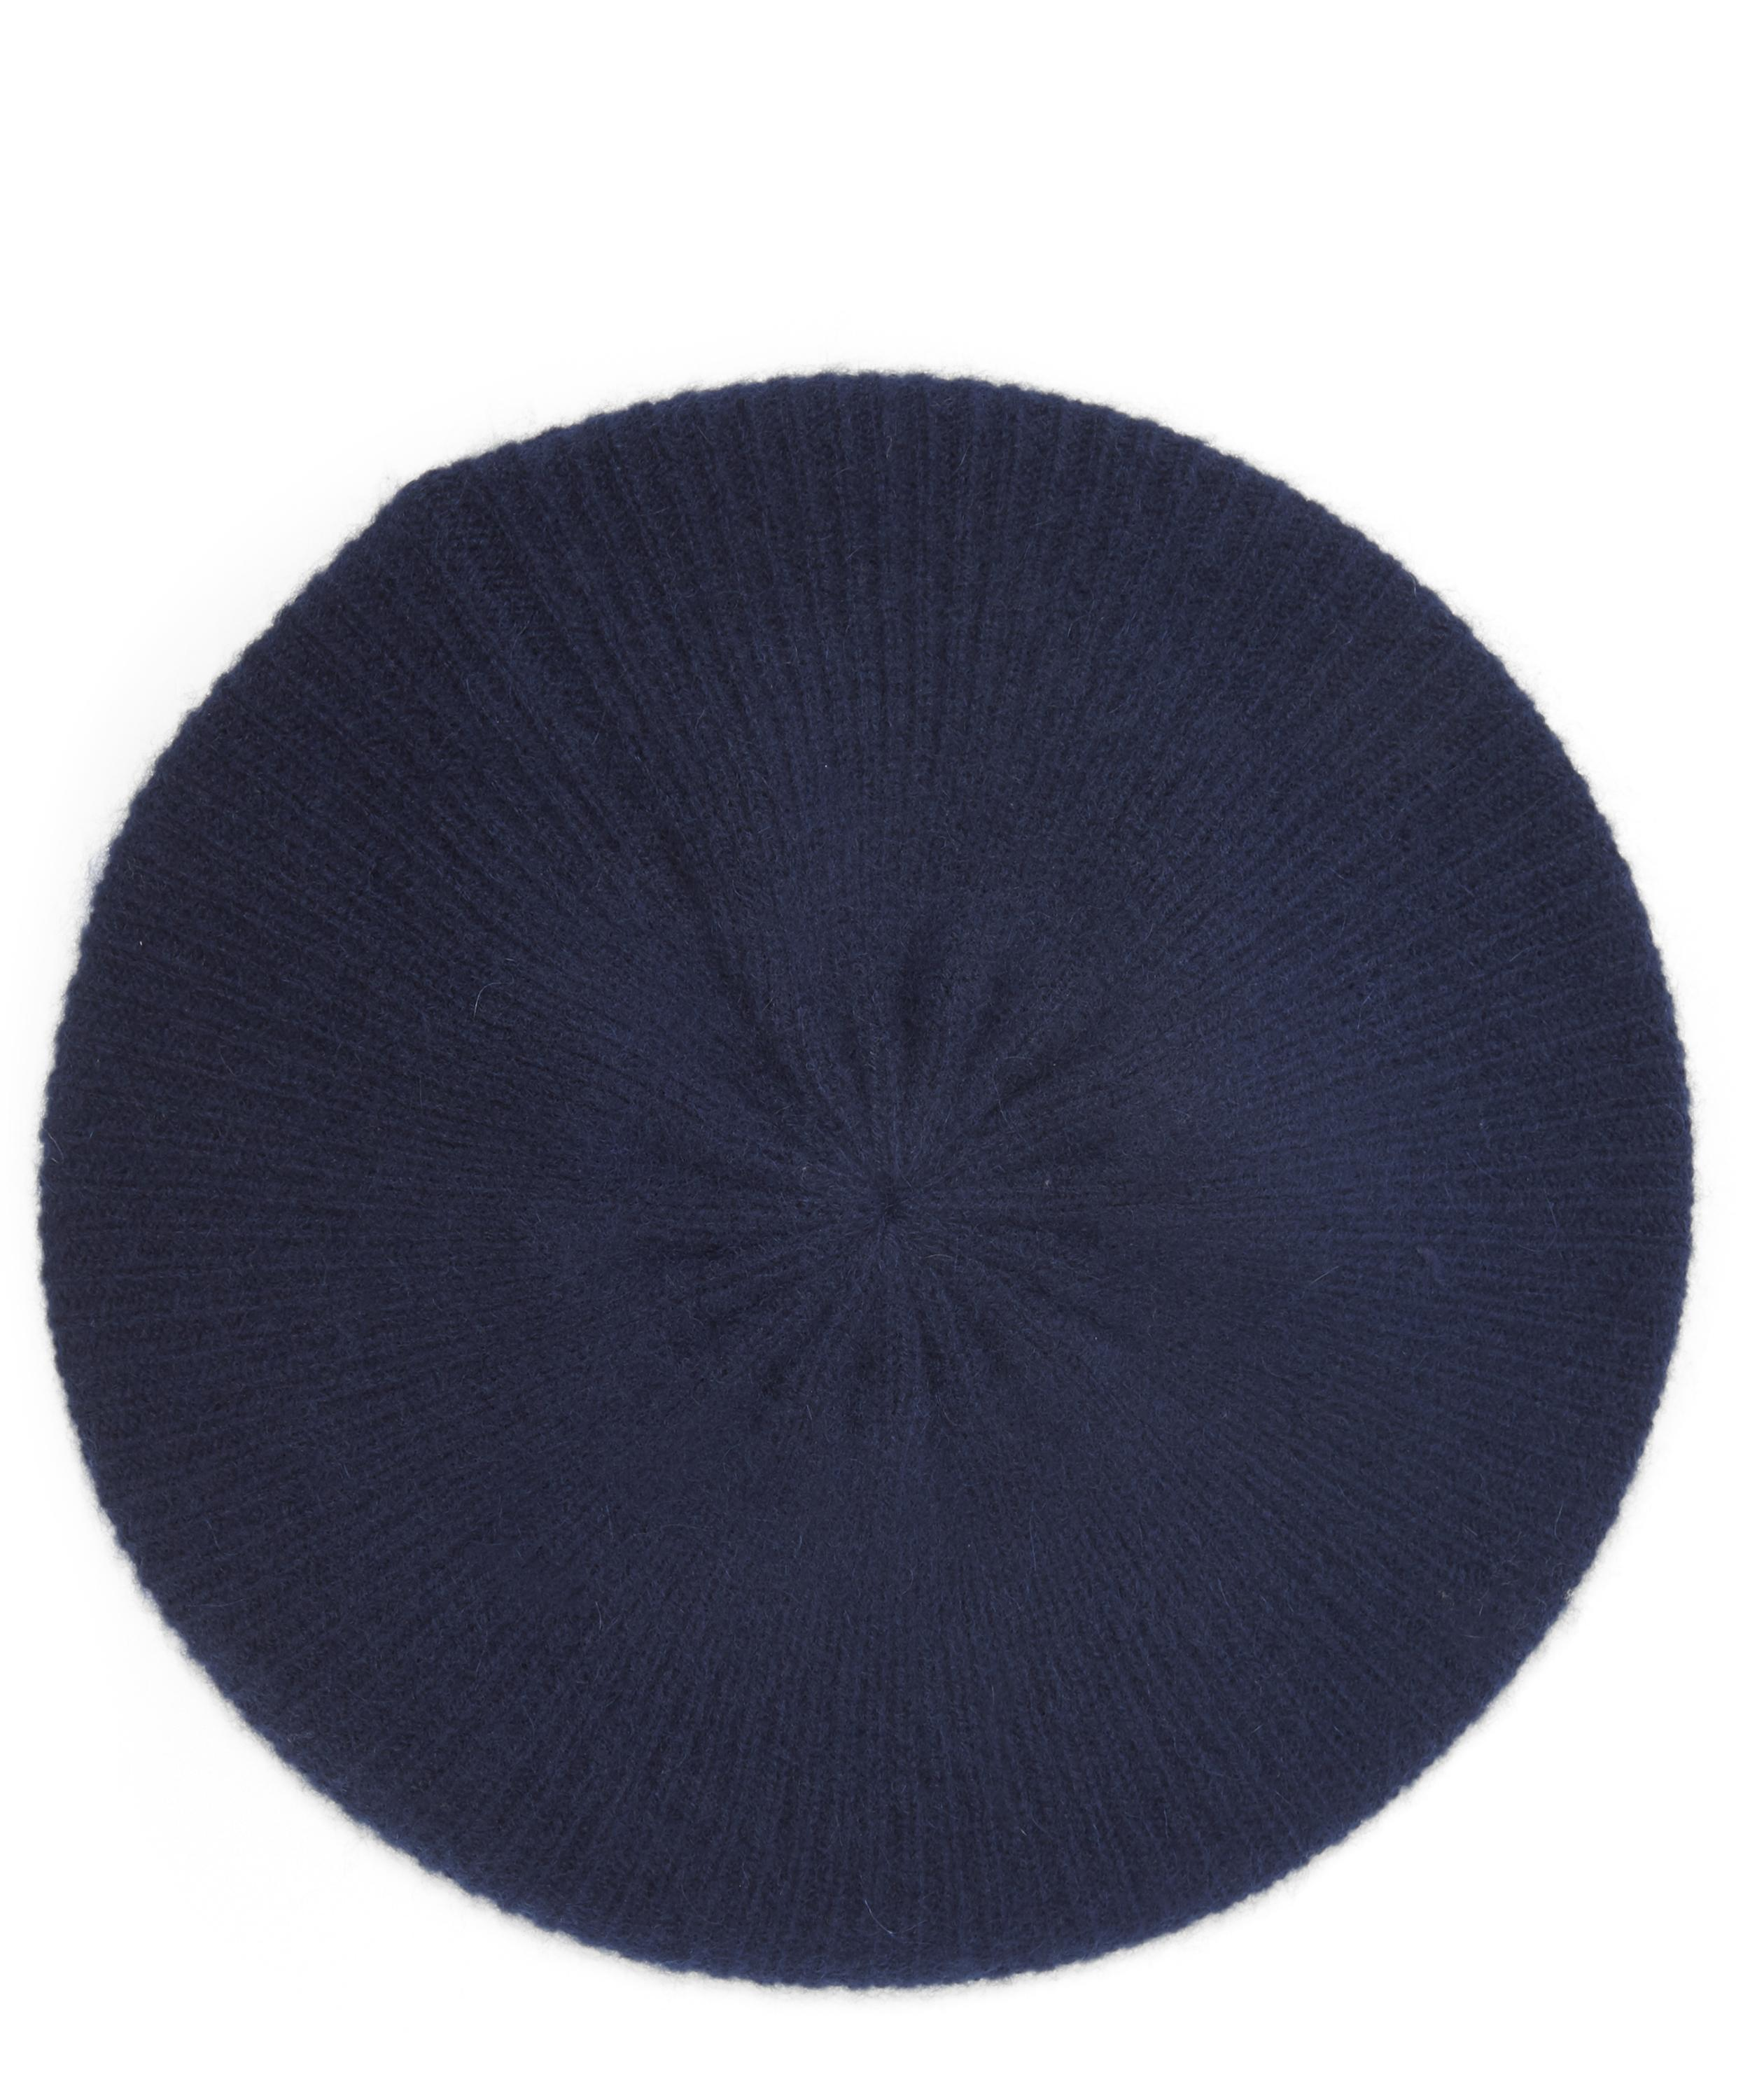 b9bec18dd6b Milled Cashmere Knitted Beret